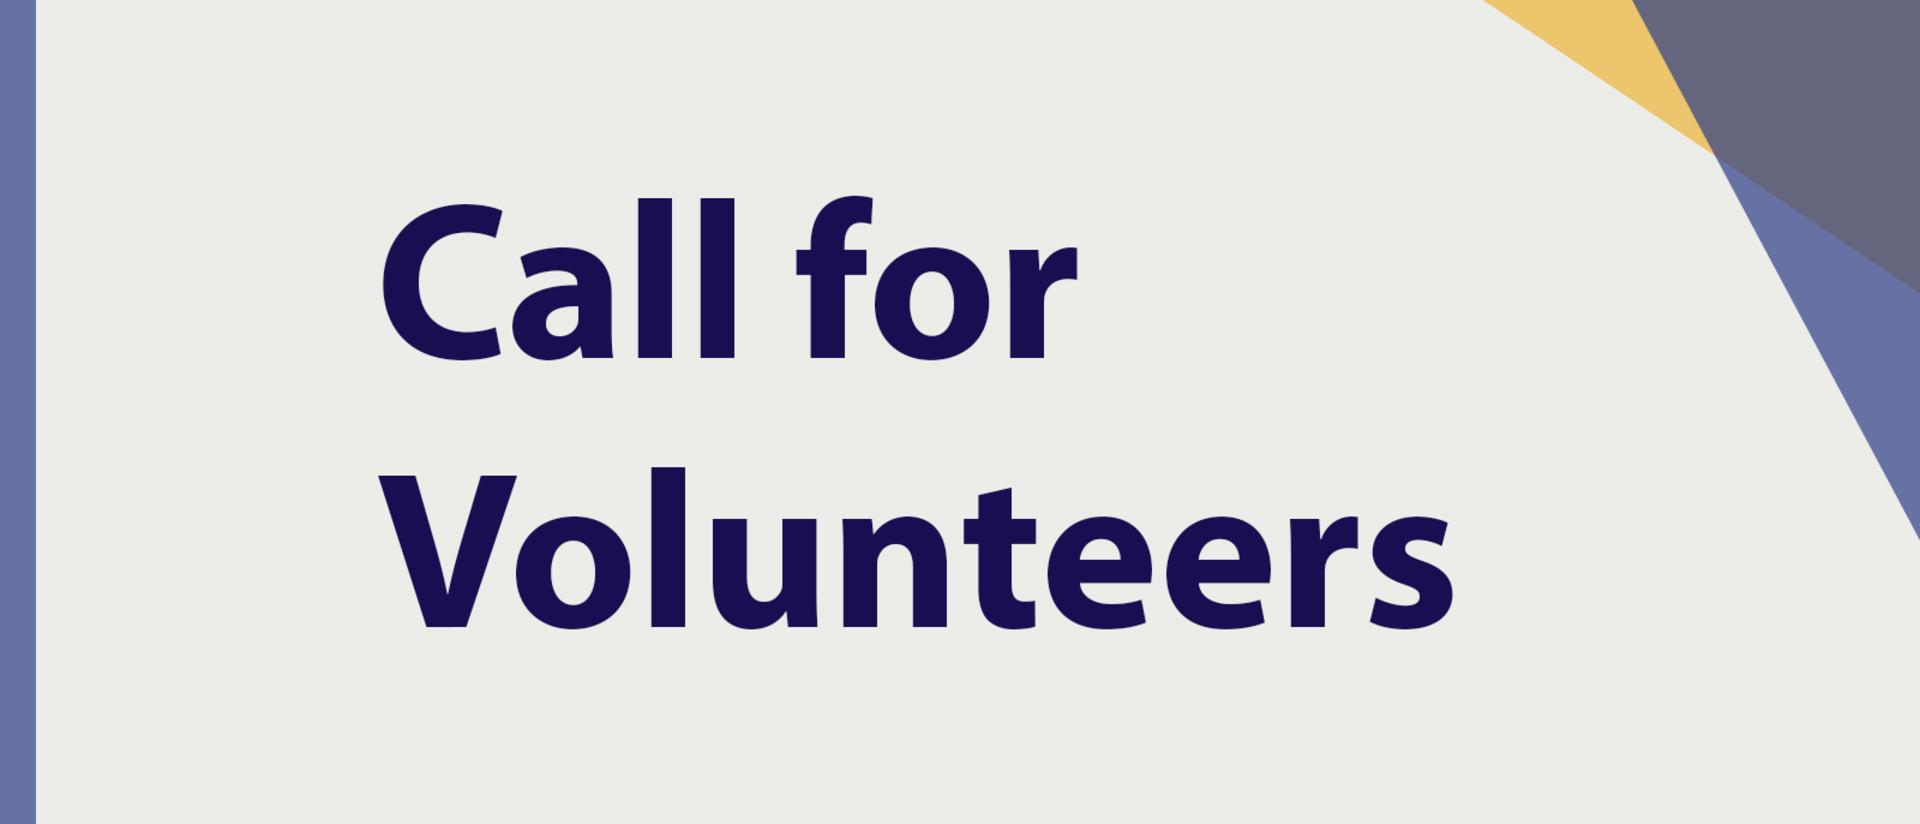 text Call for Volunteers